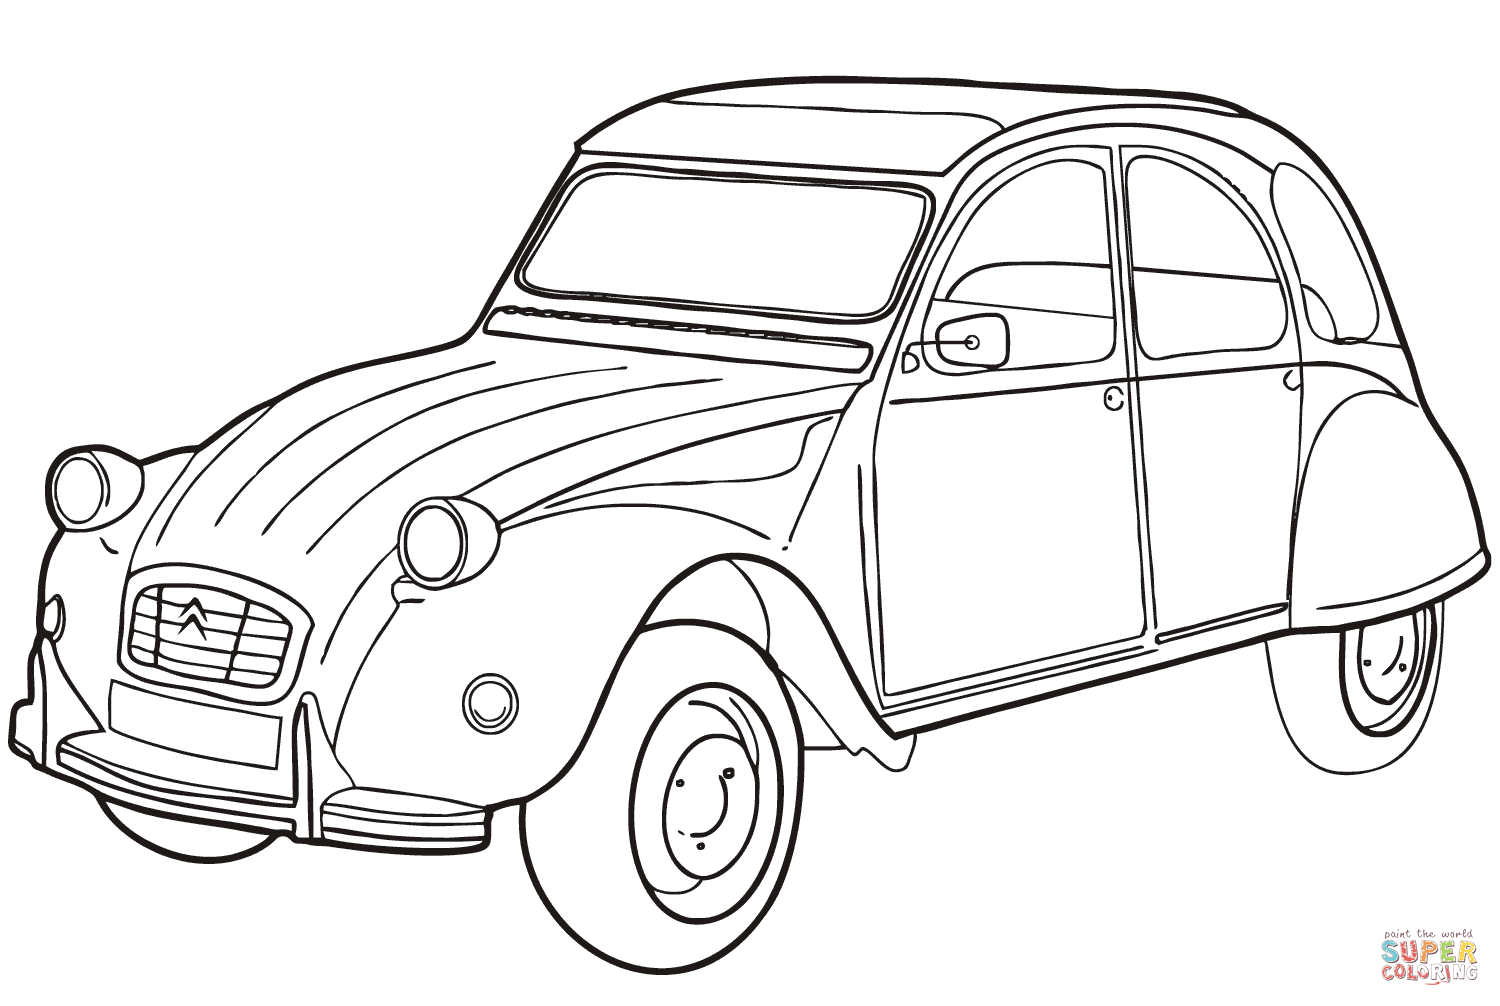 Citron 2CV coloring web page Classes Citron Free coloring pages to print | Cars  coloring pages, Coloring pages, Cute cars